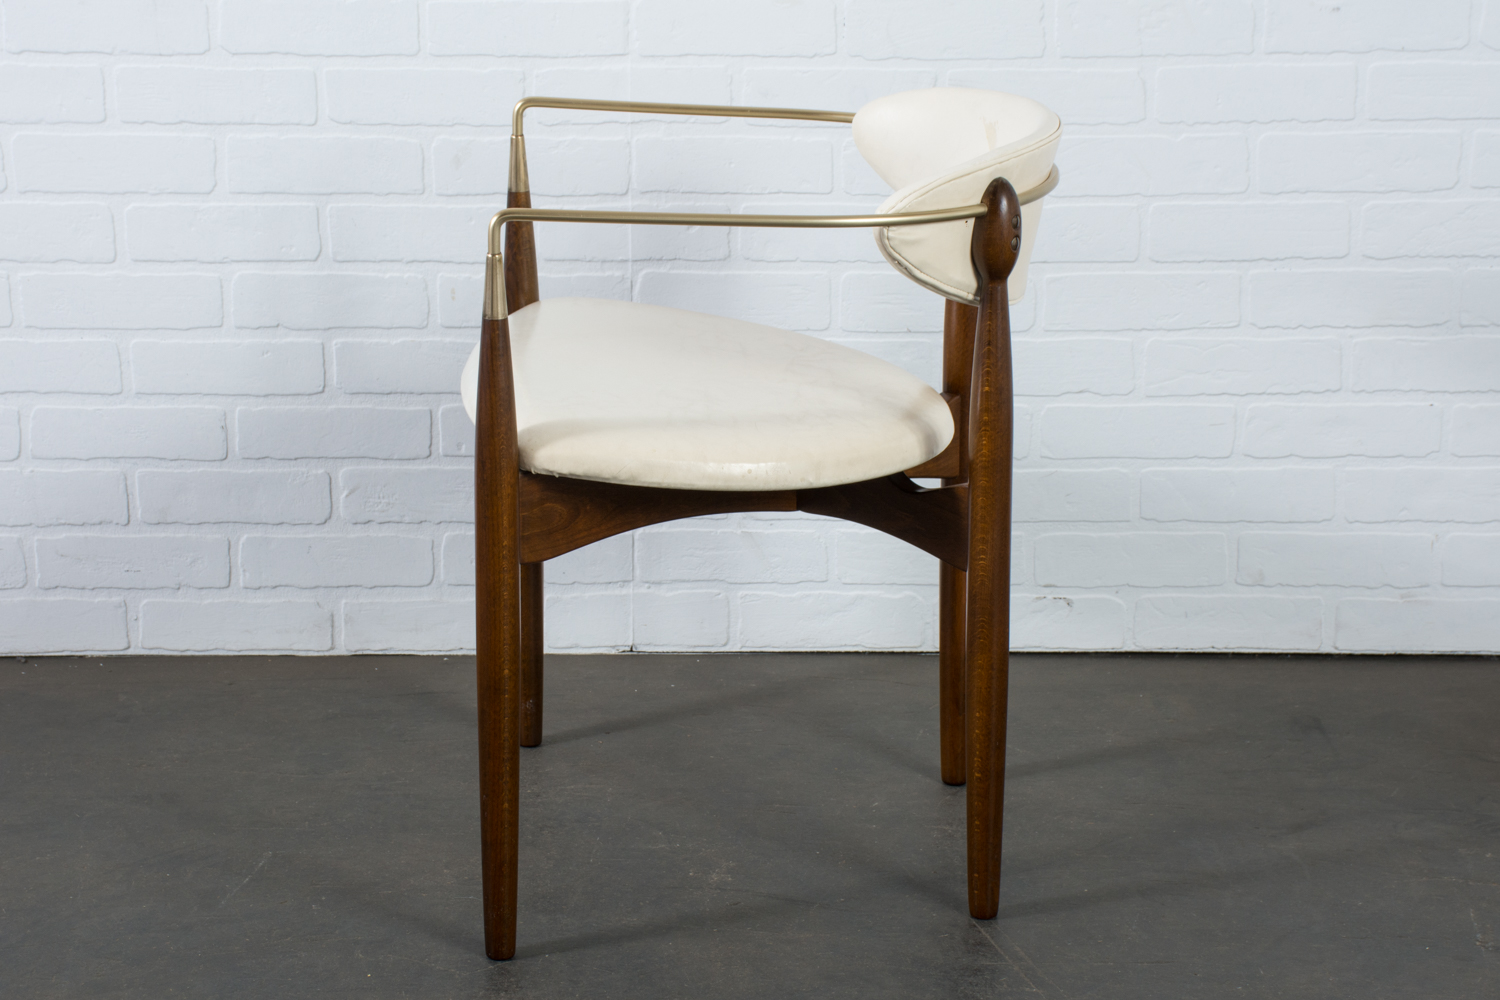 Selig Chair Dan Johnson Viscount Armchair By Selig